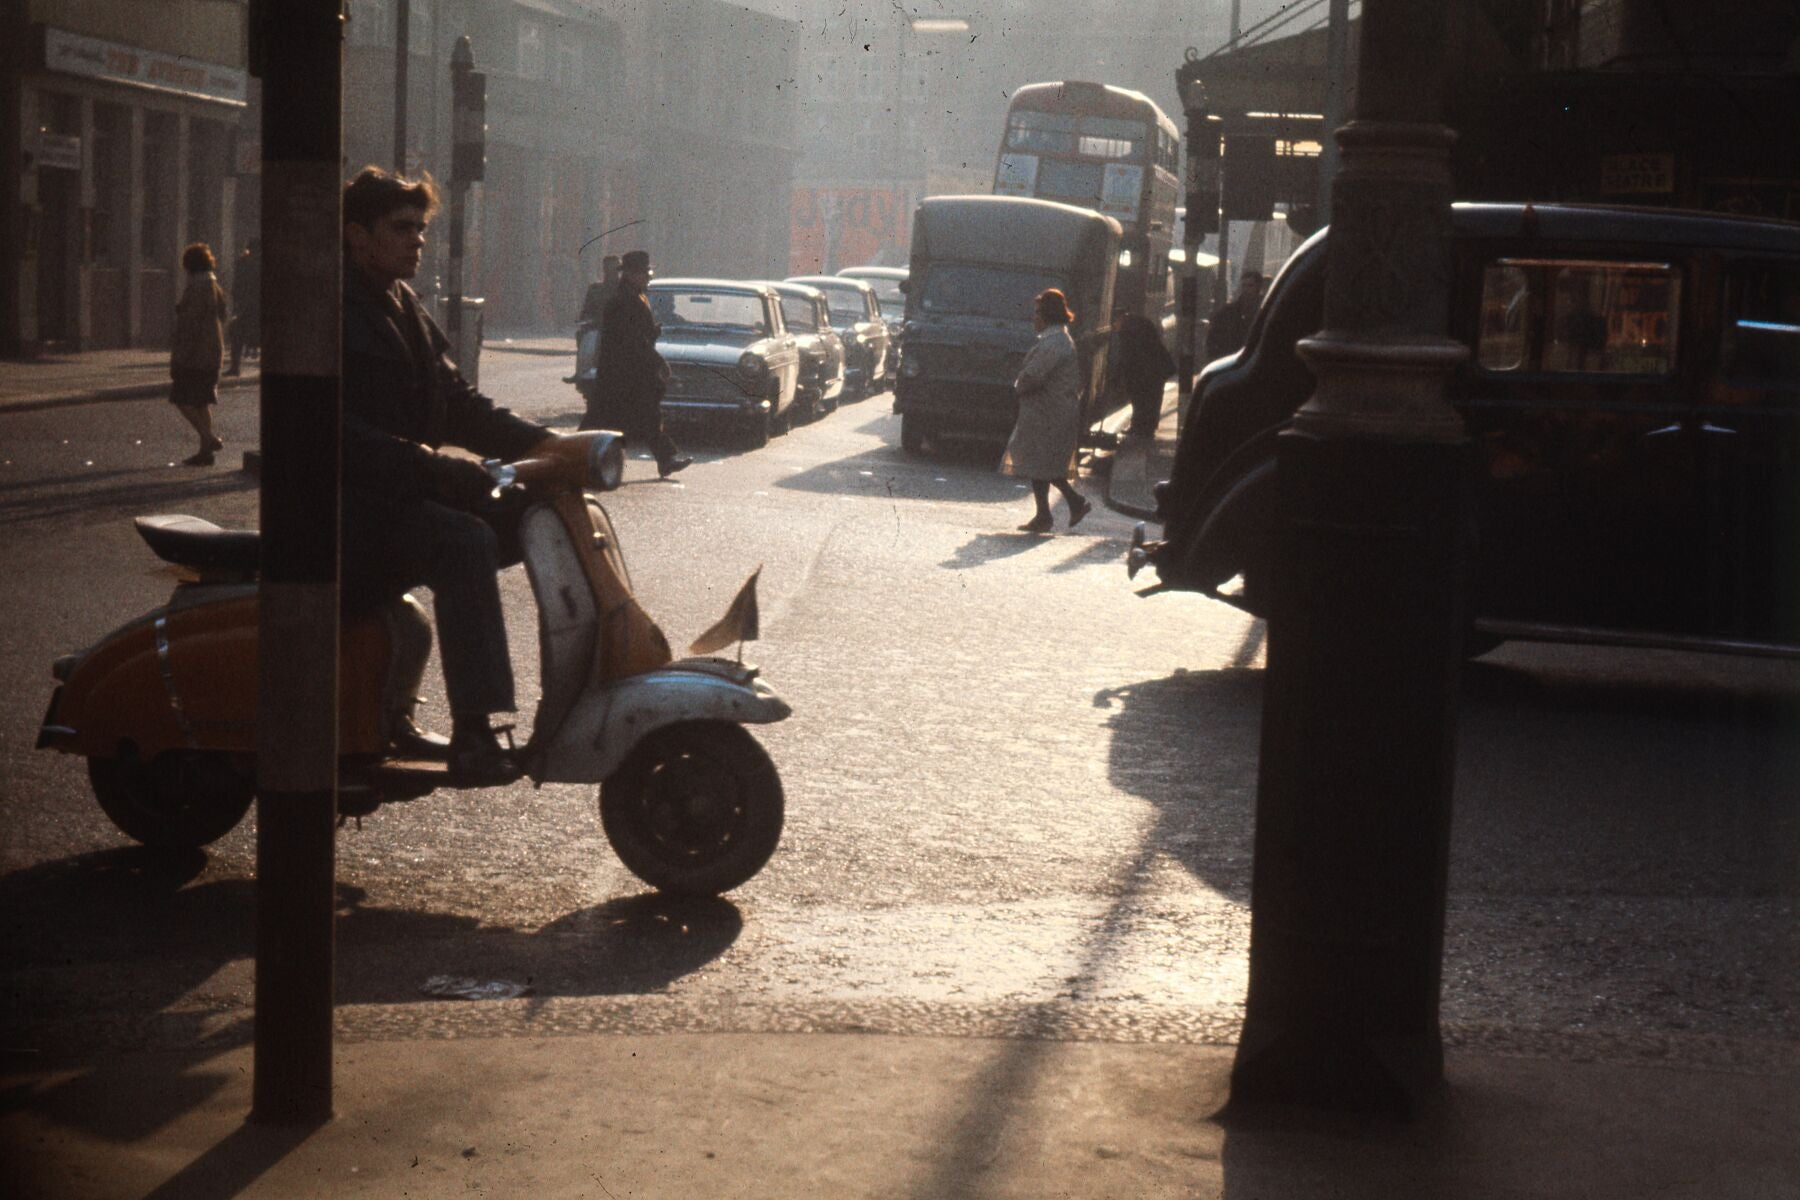 Man on Moped in London by Bob Hyde - c. 1963